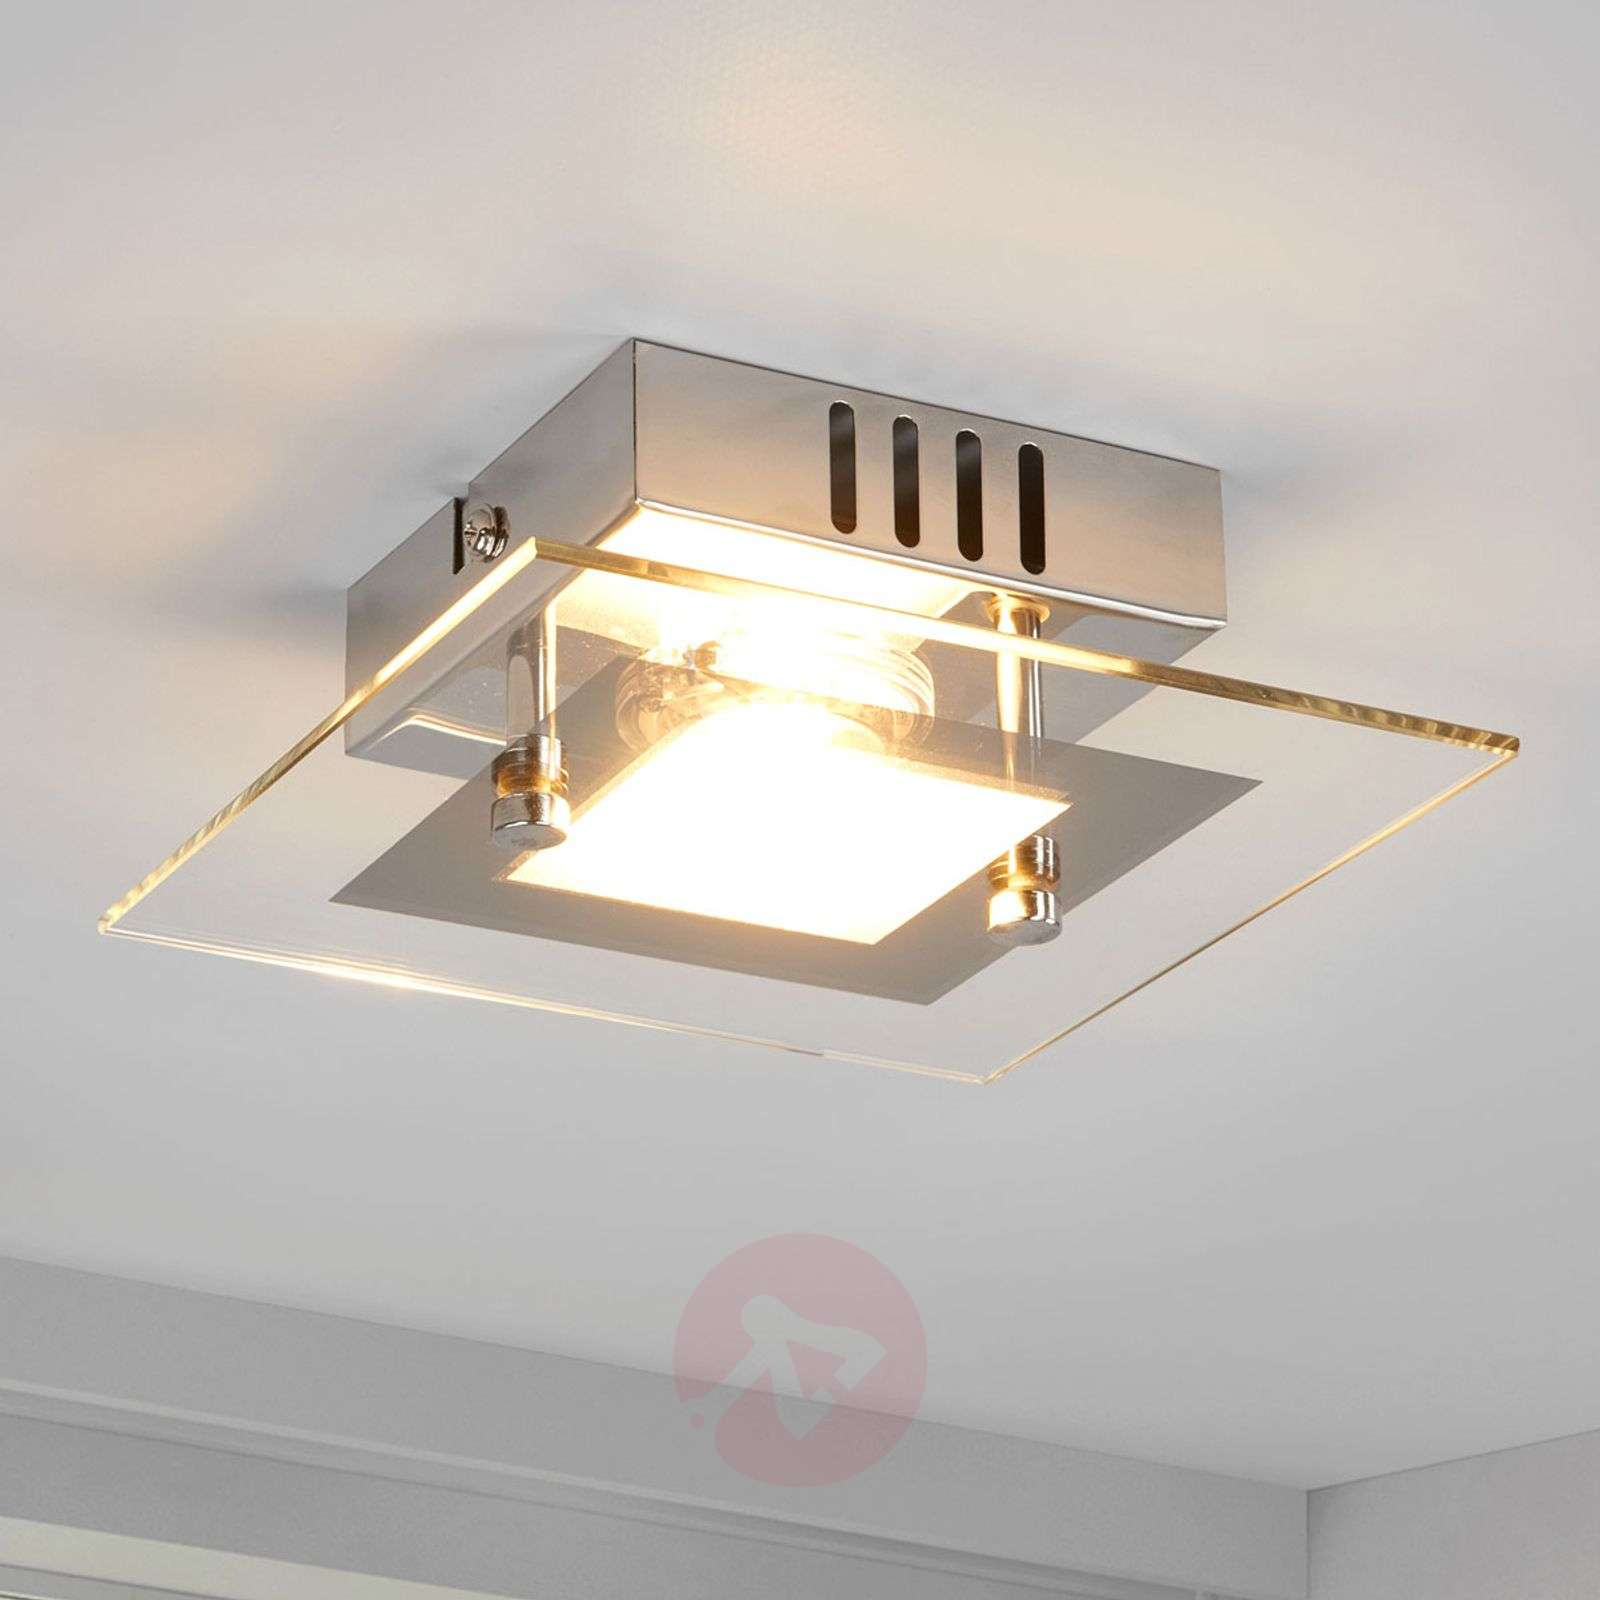 Small Ceiling Lights